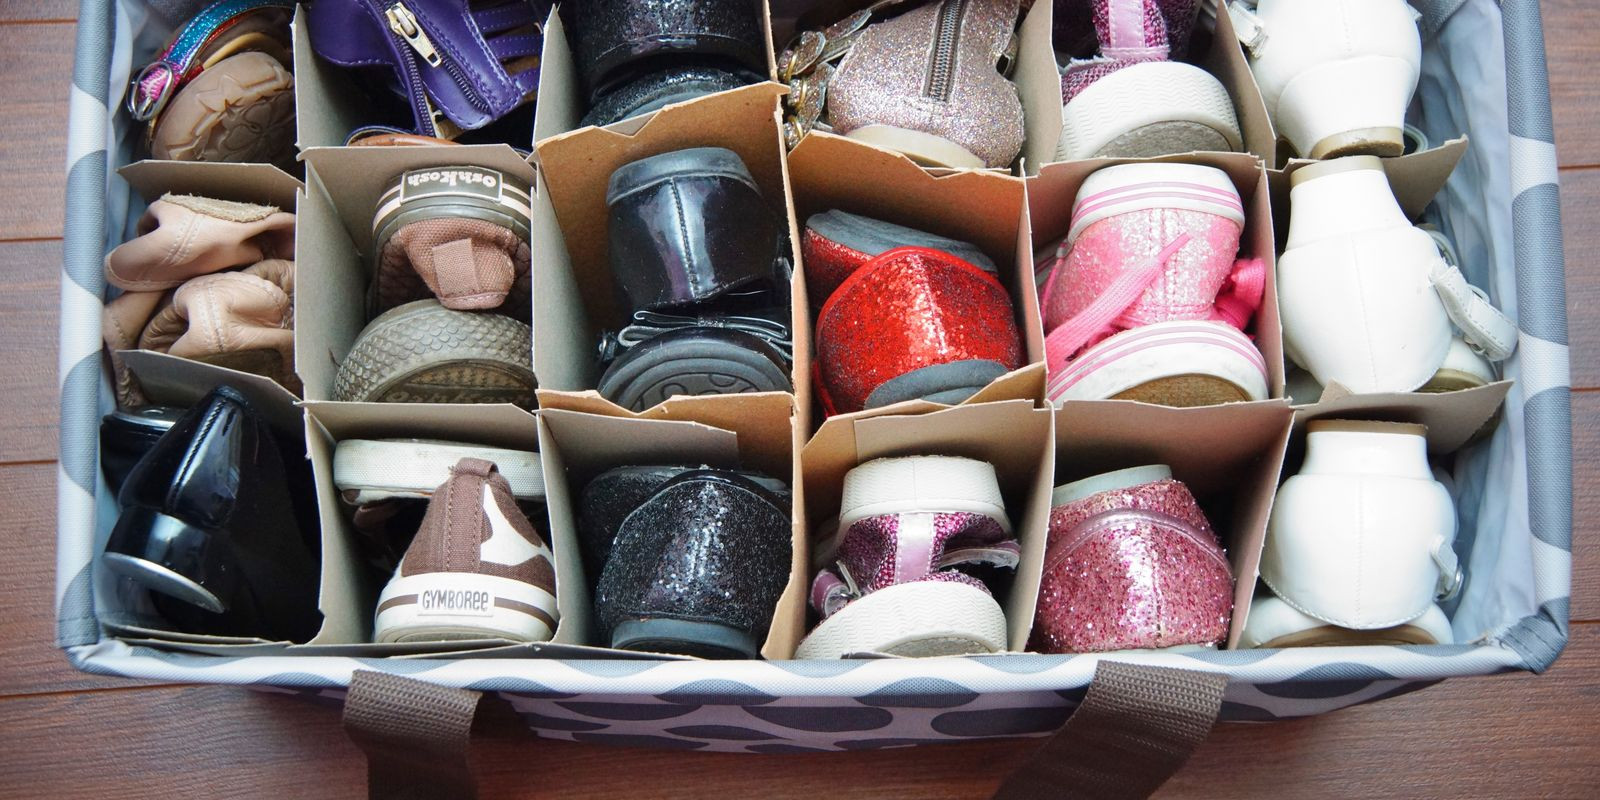 DIY Shoe Organizer Ideas  Shoe Organizing Ideas DIY Shoe Storage